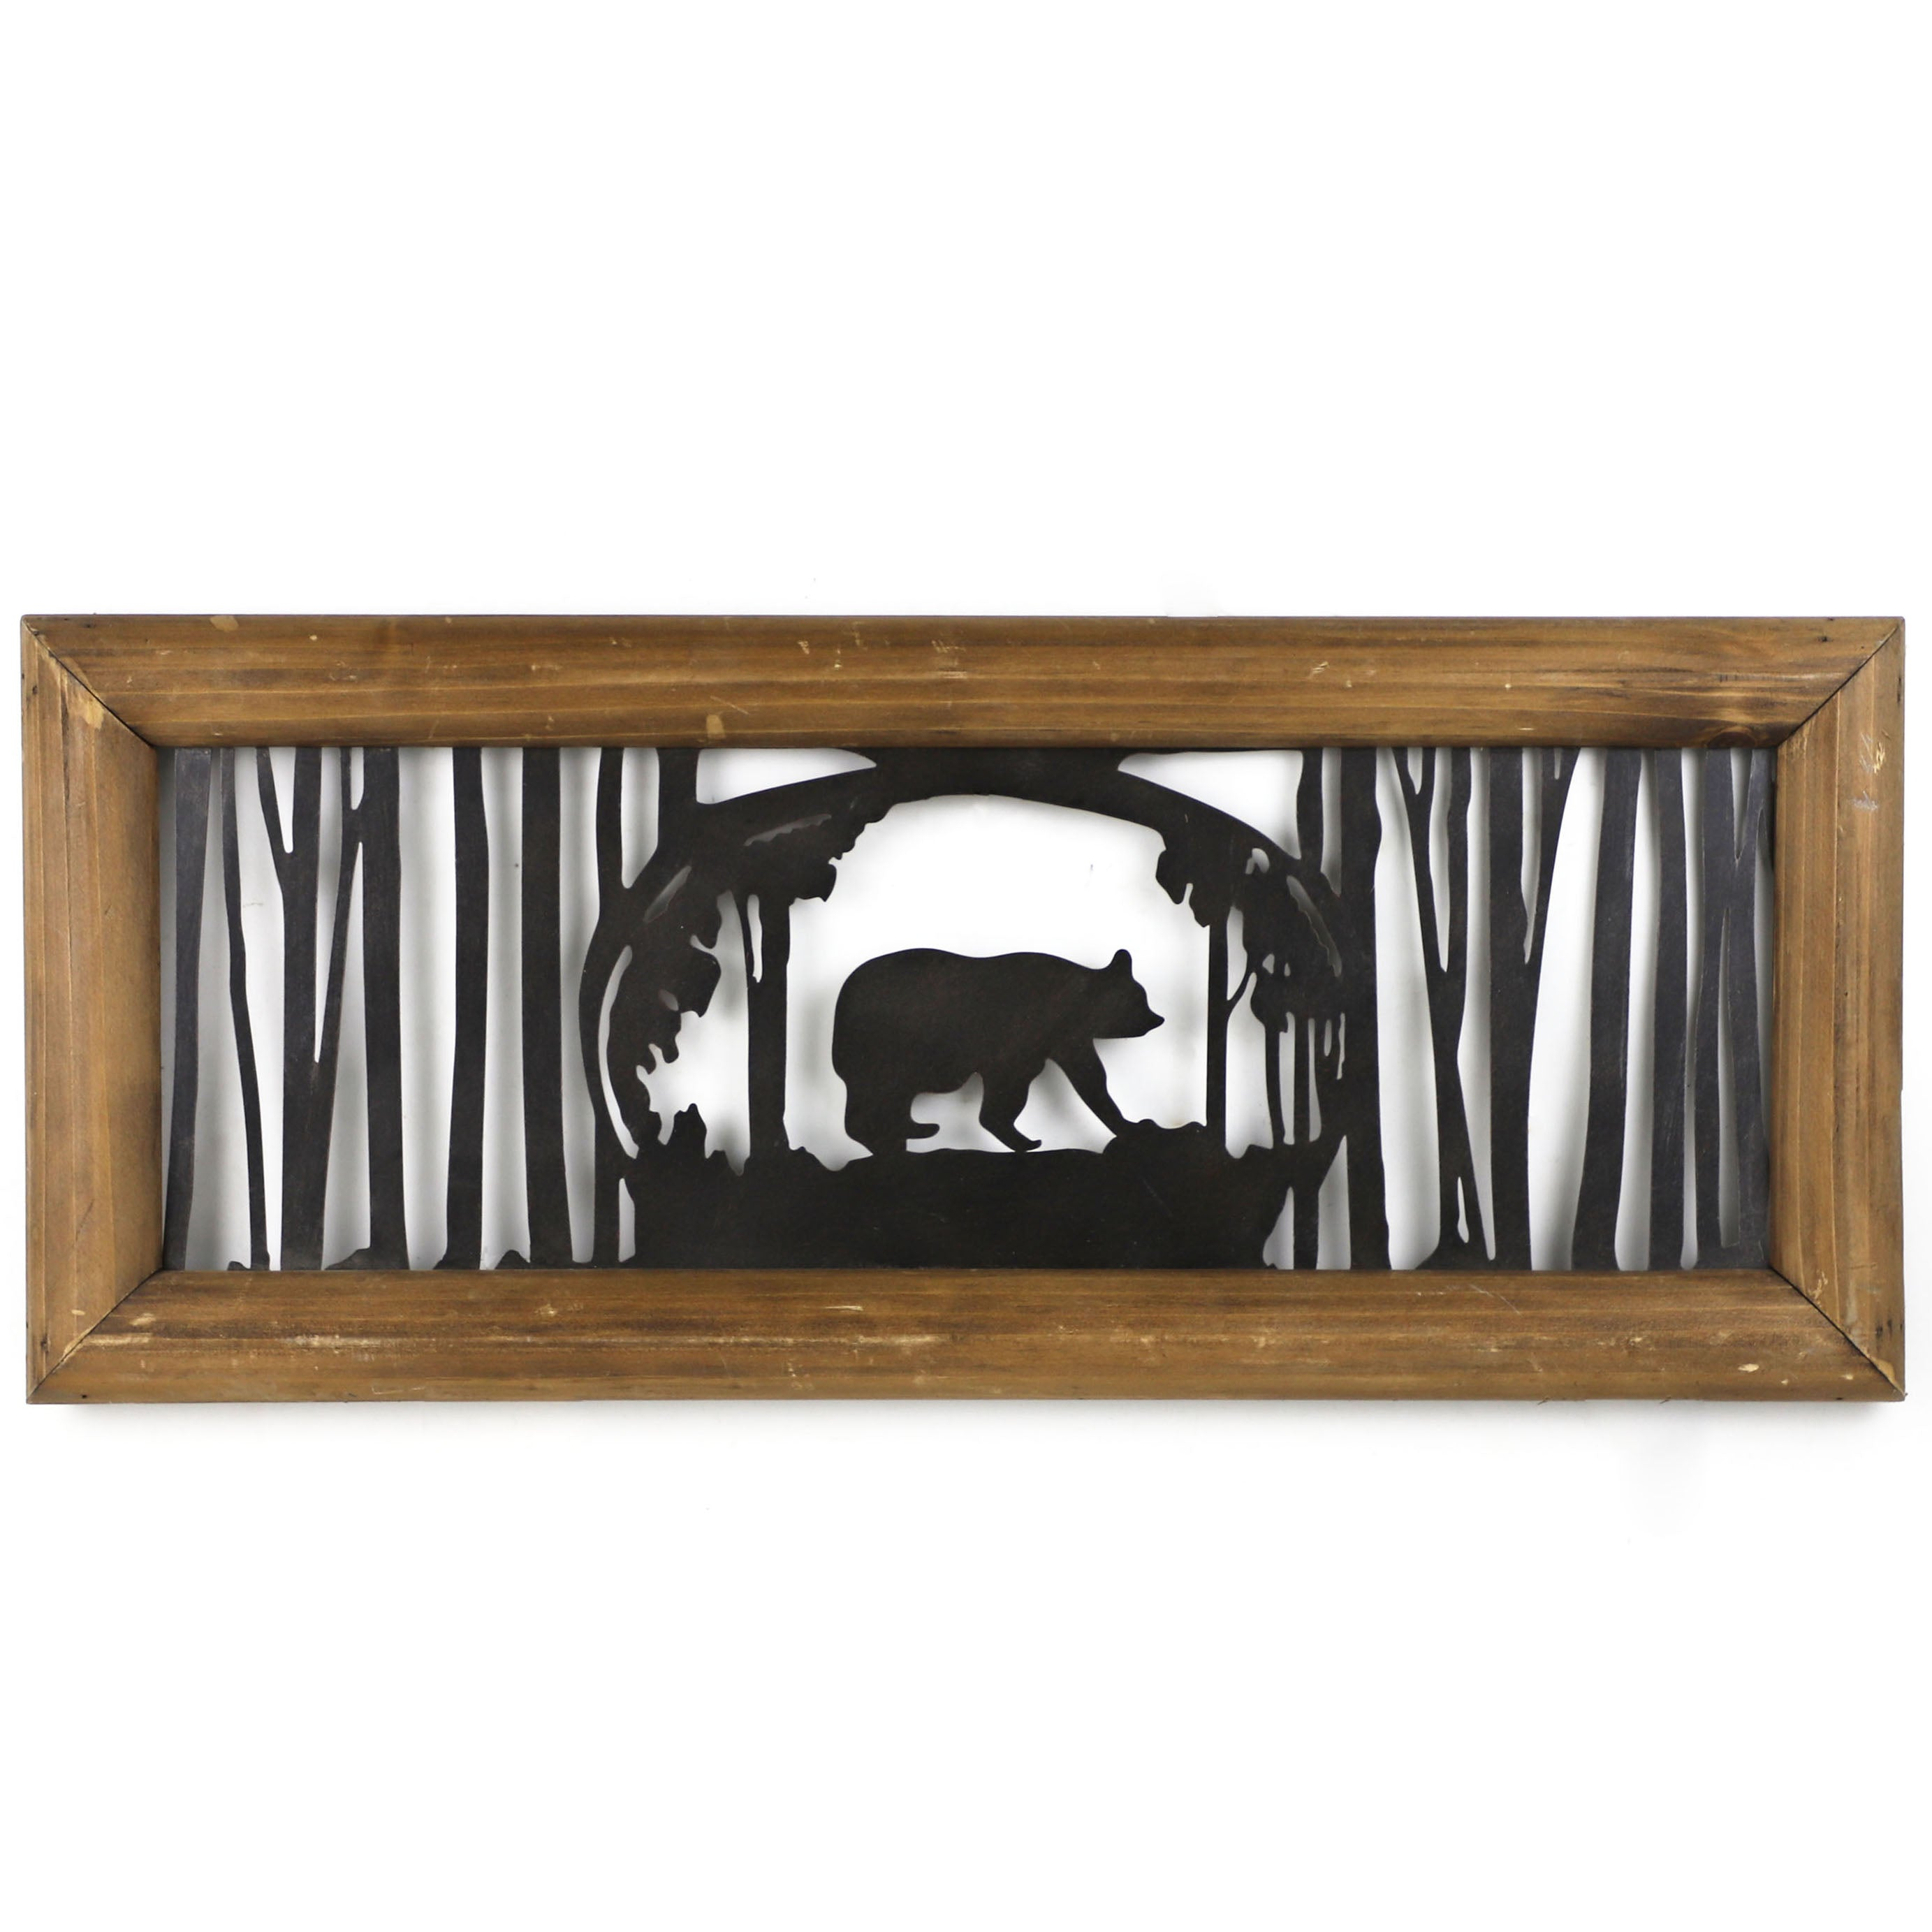 Rustic Wall Decor - Metal Cutout Bear in the Tree Wood Art by HiEnd Accents